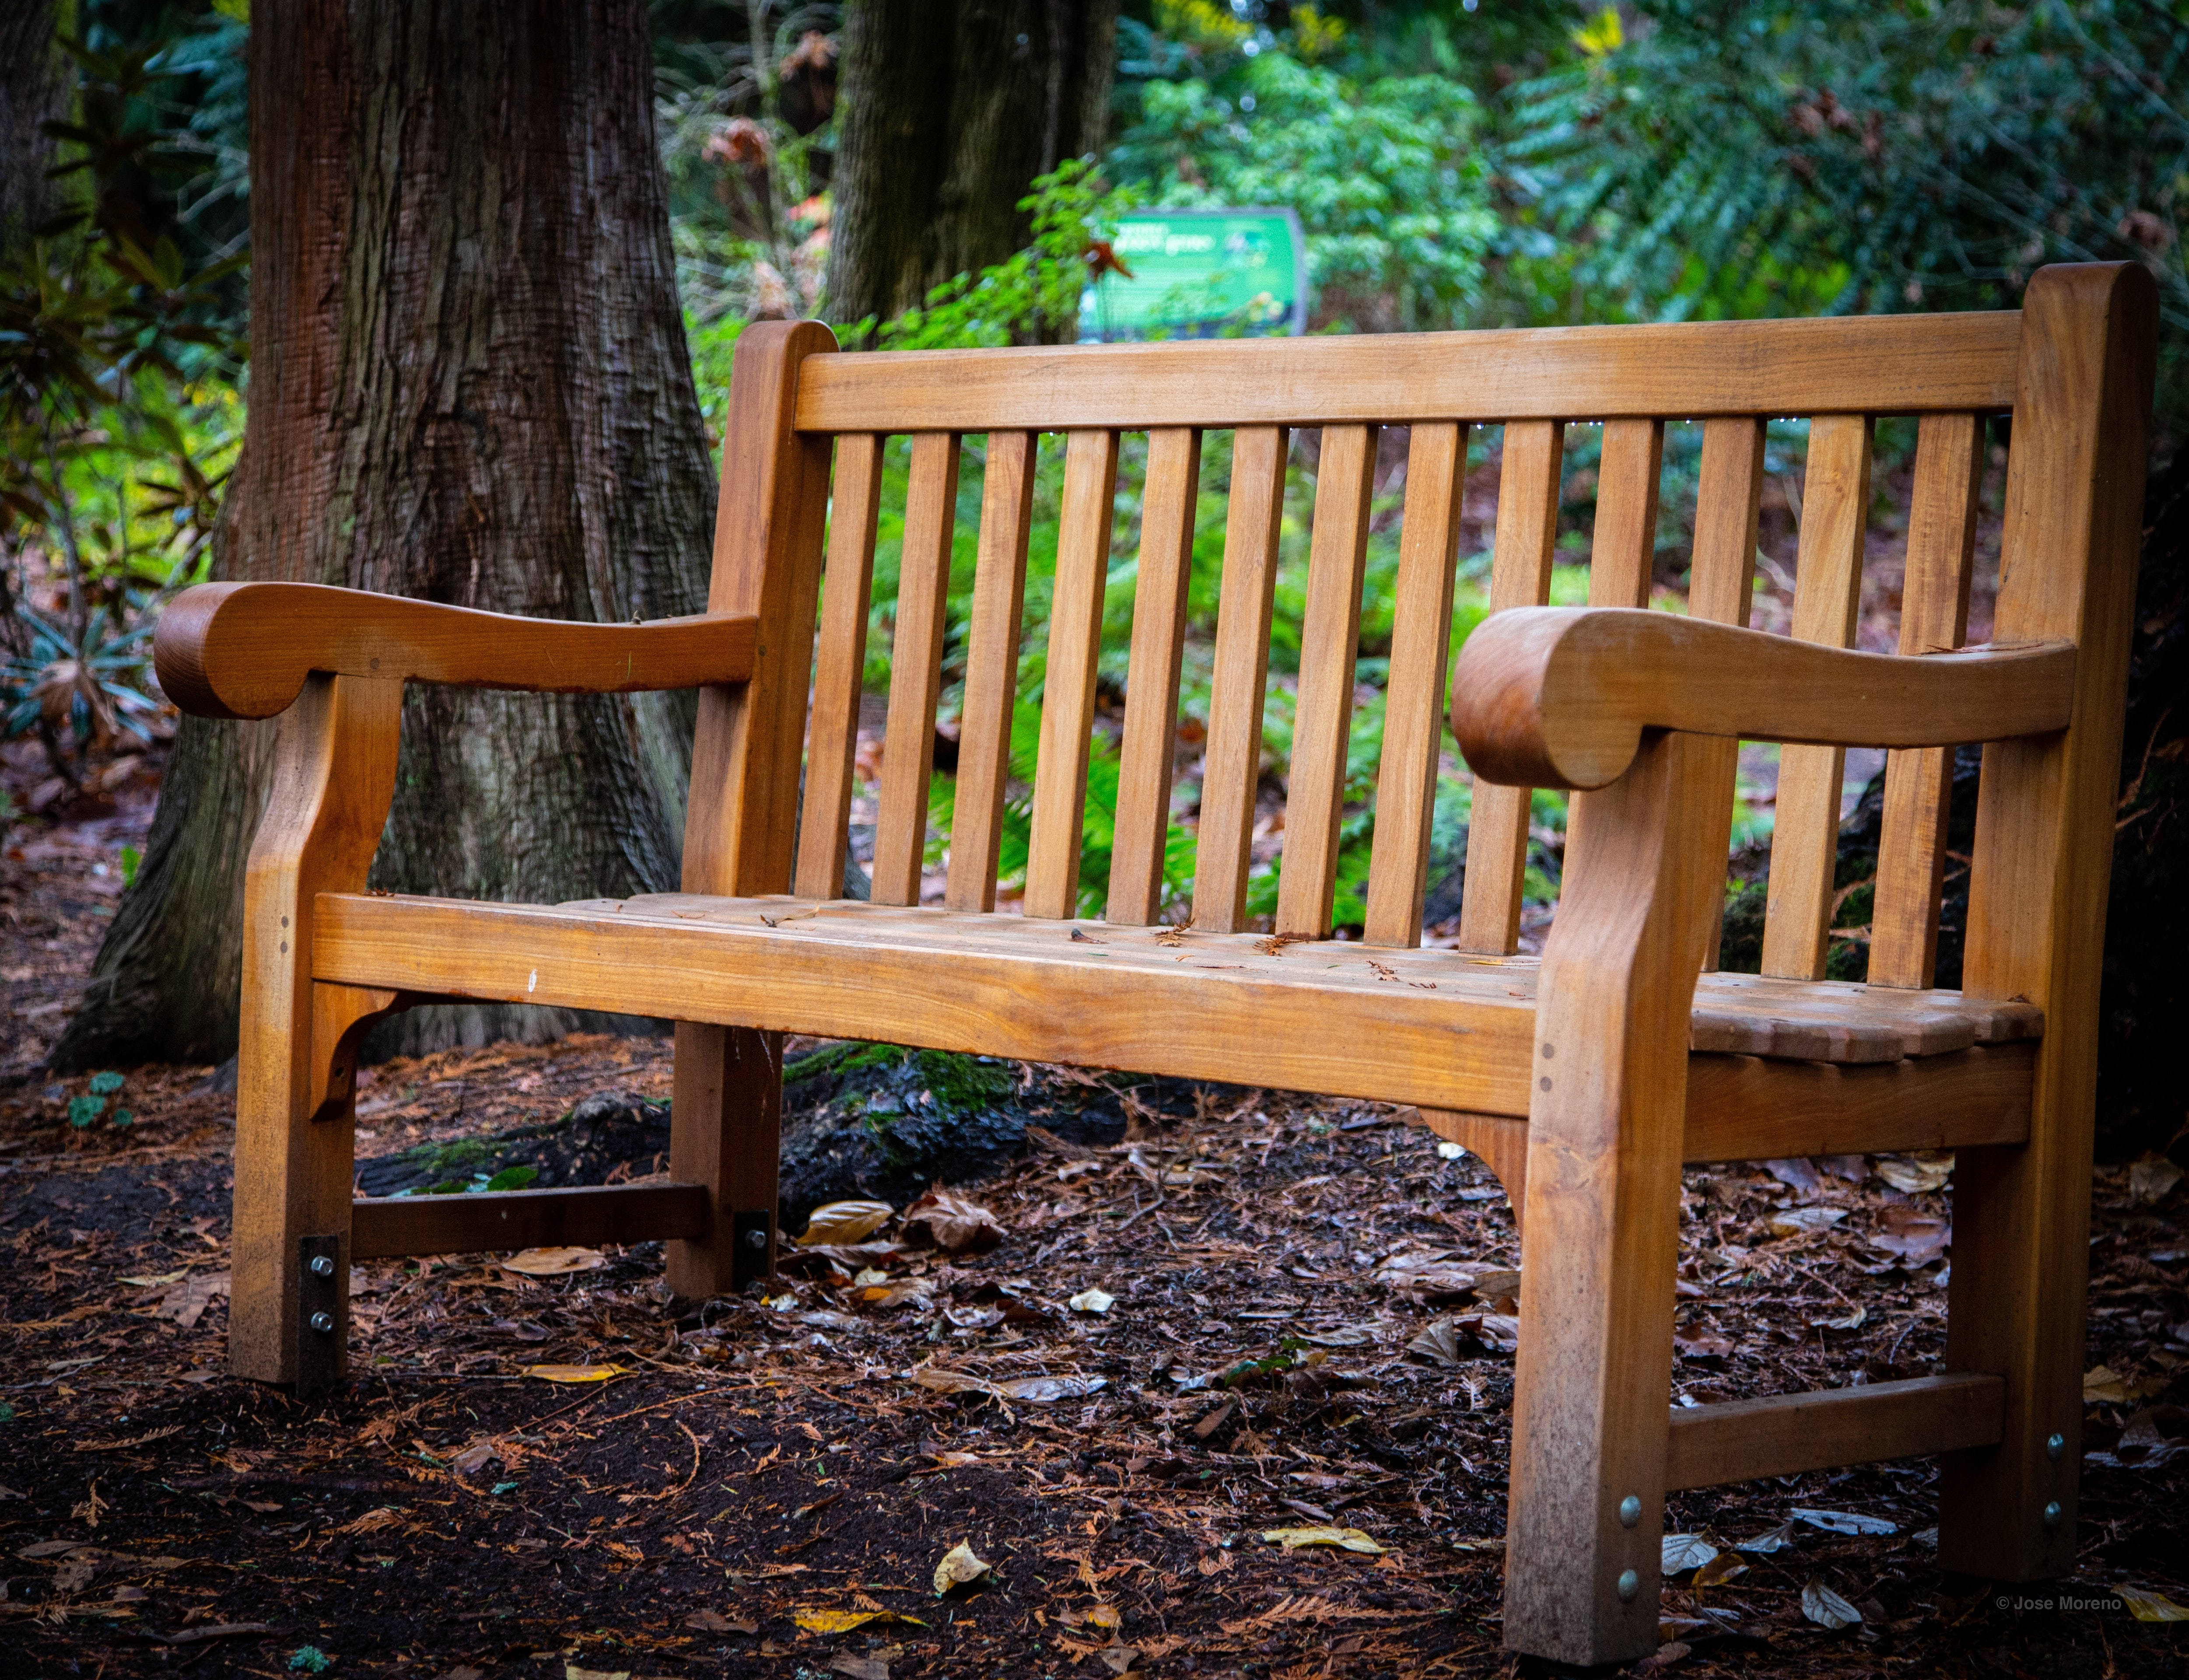 vacant brown wooden bench near tree